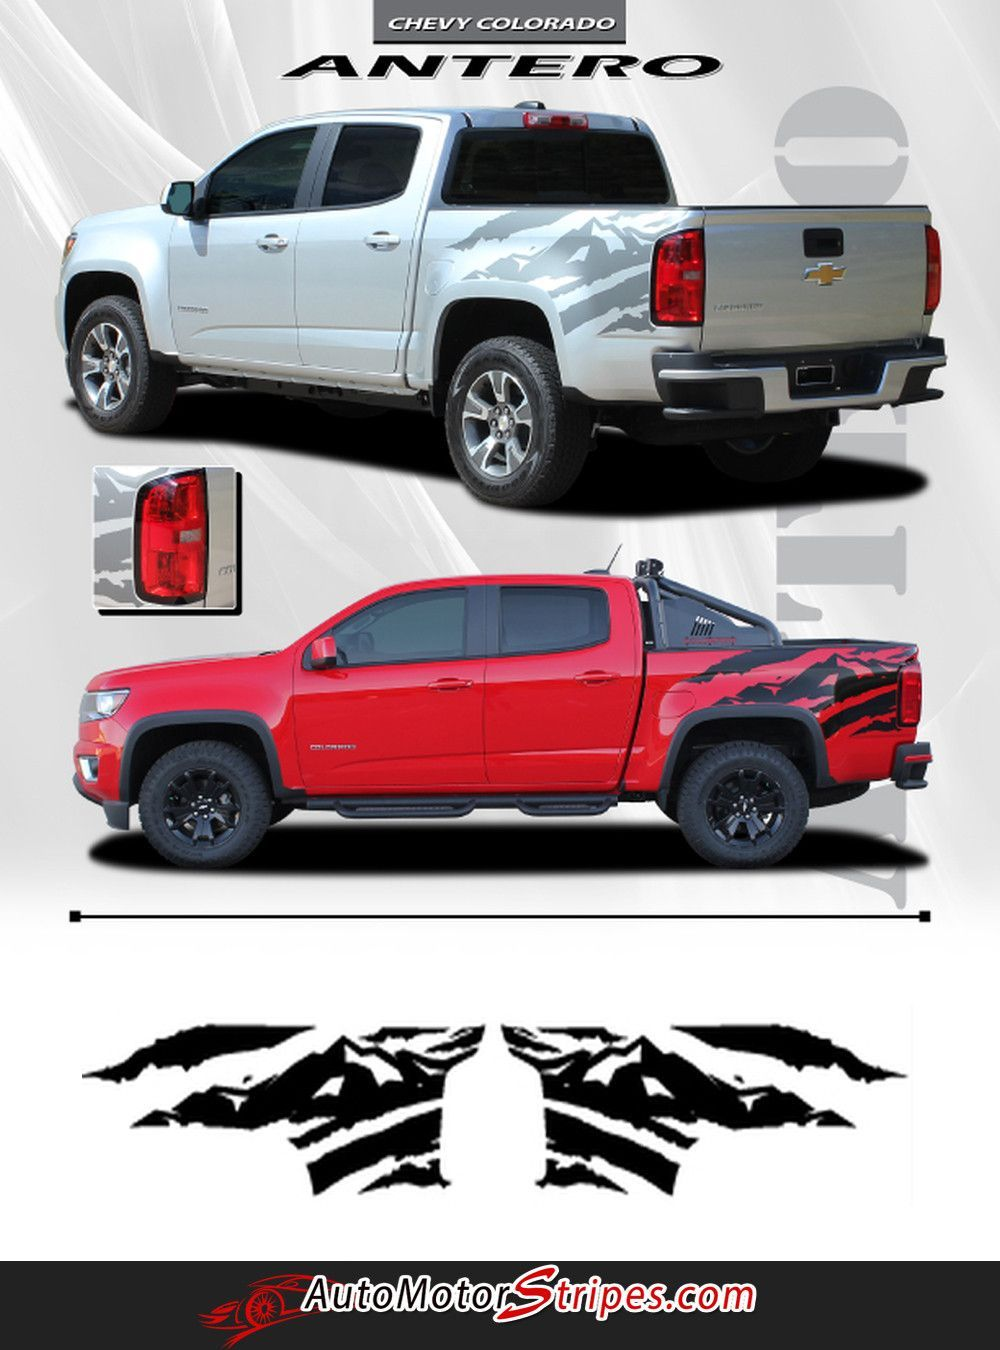 20152020 Chevy Colorado ANTERO Rear Side Truck Bed